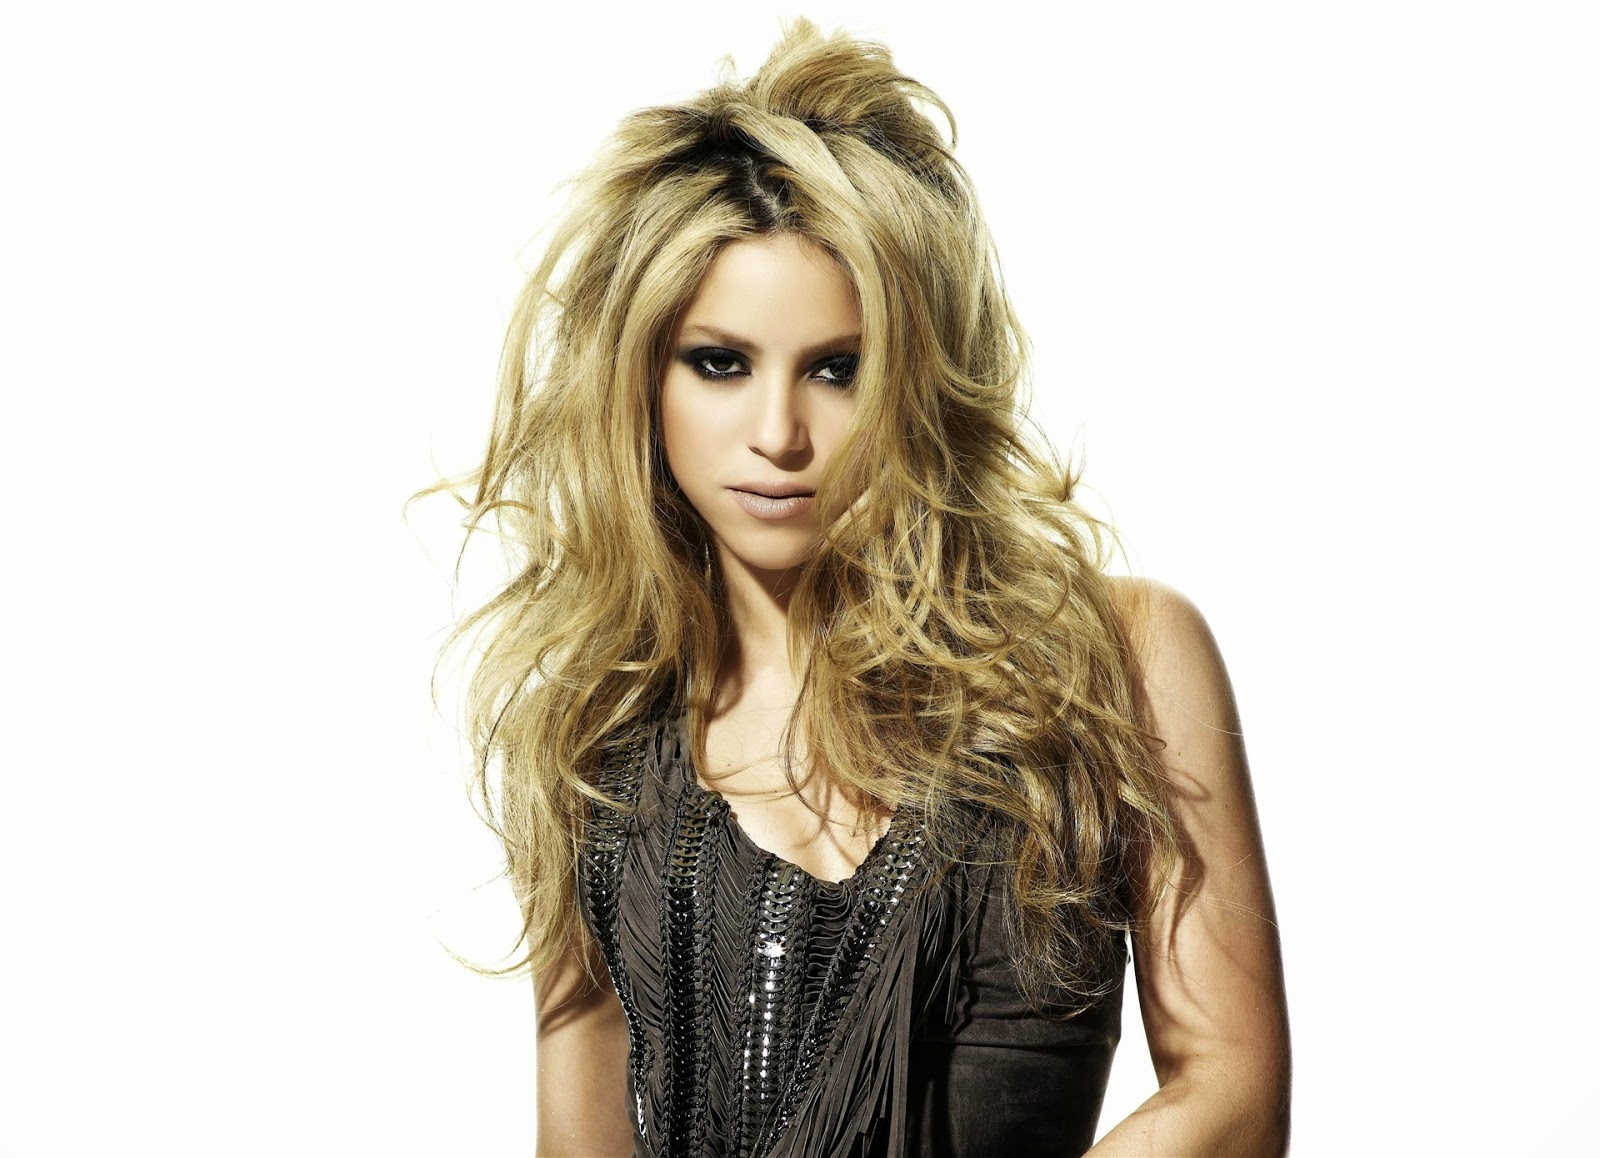 shakira photo 4k hd desktop 10